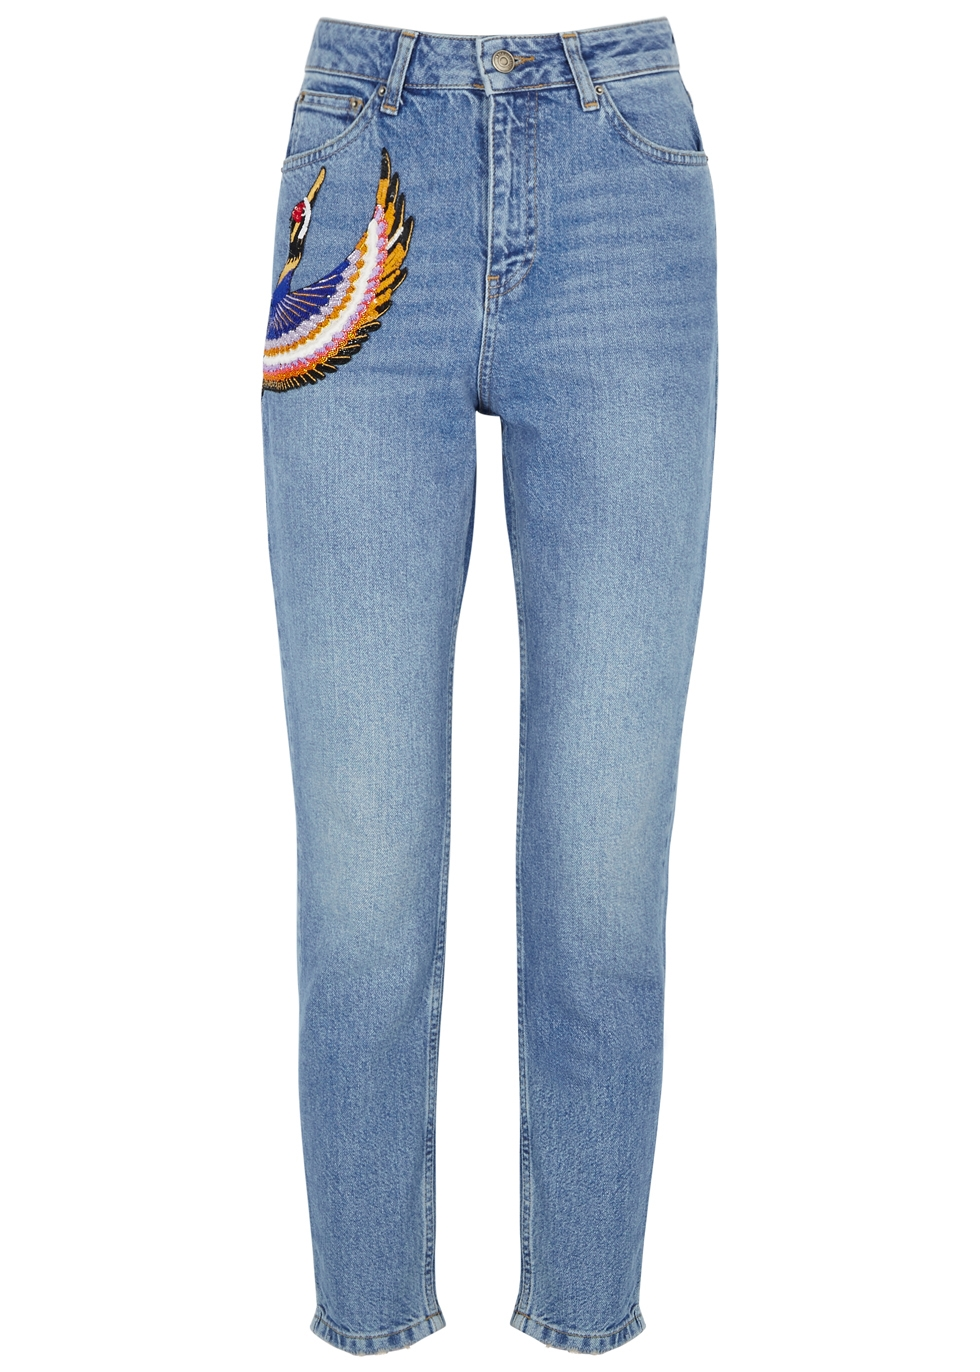 KATYA DOBRYAKOVA Cranes Embellished Cropped Jeans in Denim